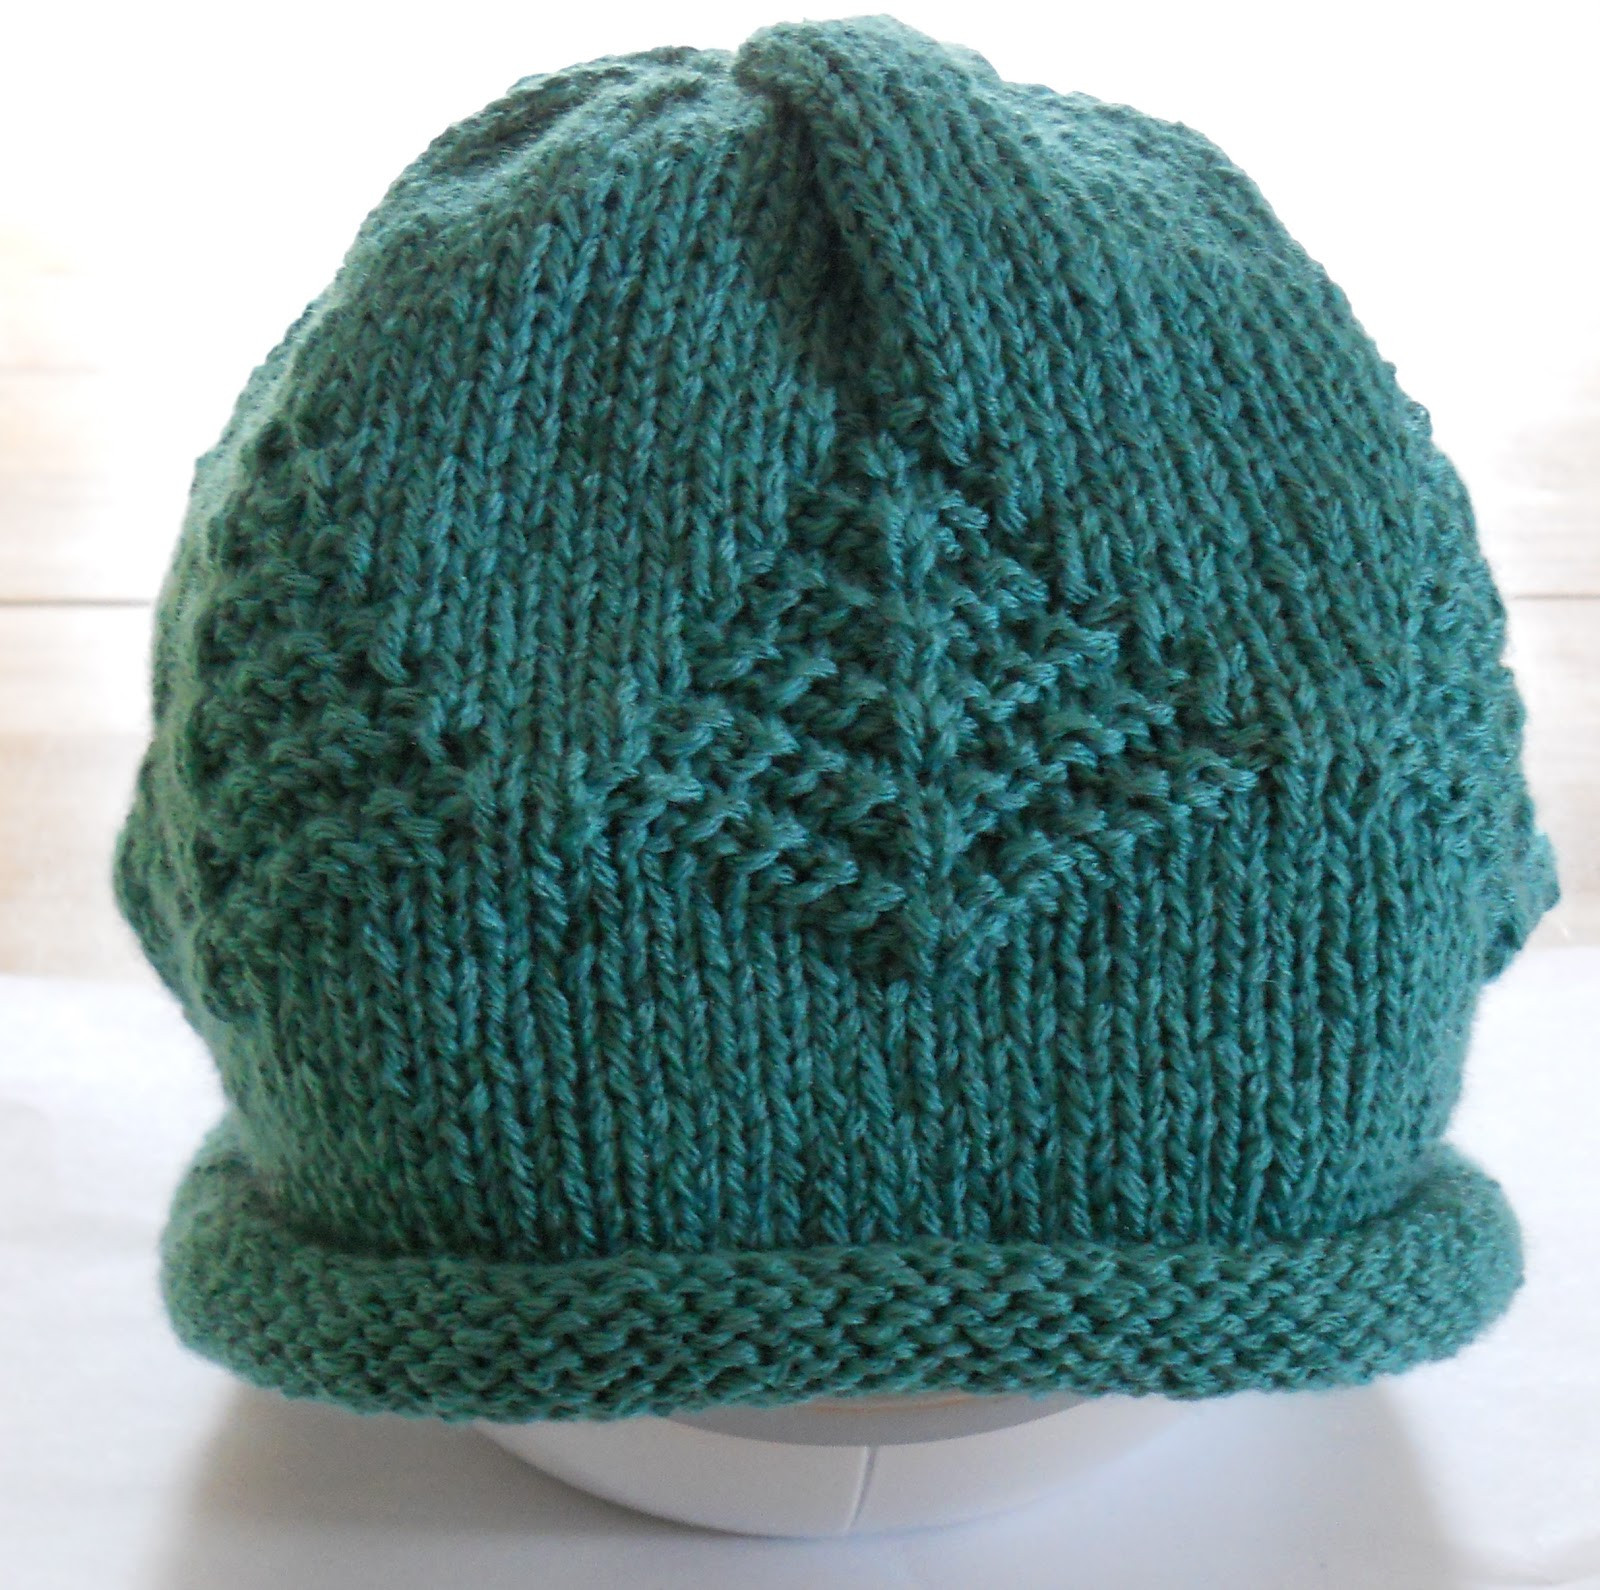 Awesome Knitting with Schnapps Introducing the Giving Tree Chemo Cap Knitted Chemo Hat Patterns Of Charming 49 Photos Knitted Chemo Hat Patterns